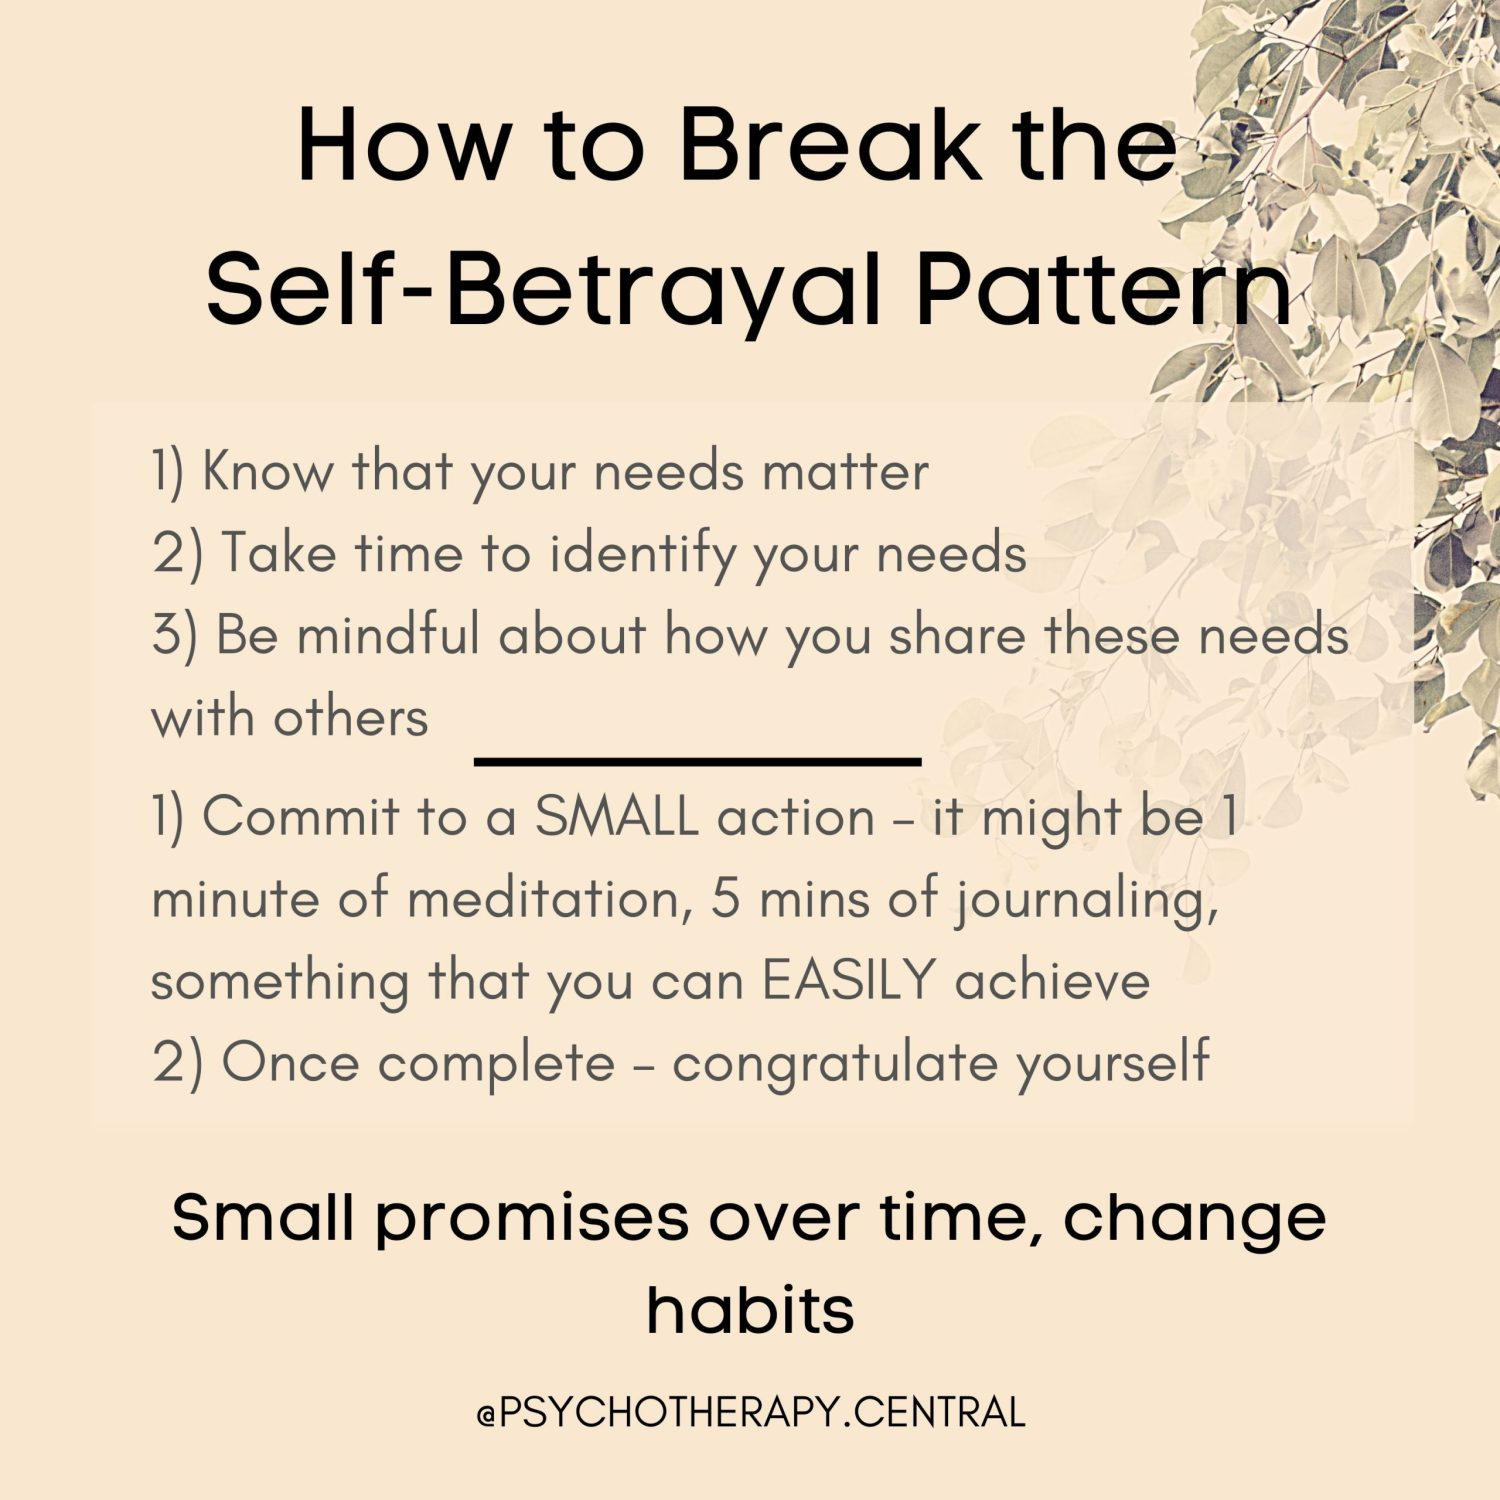 How to Break the Self-Betrayal Pattern